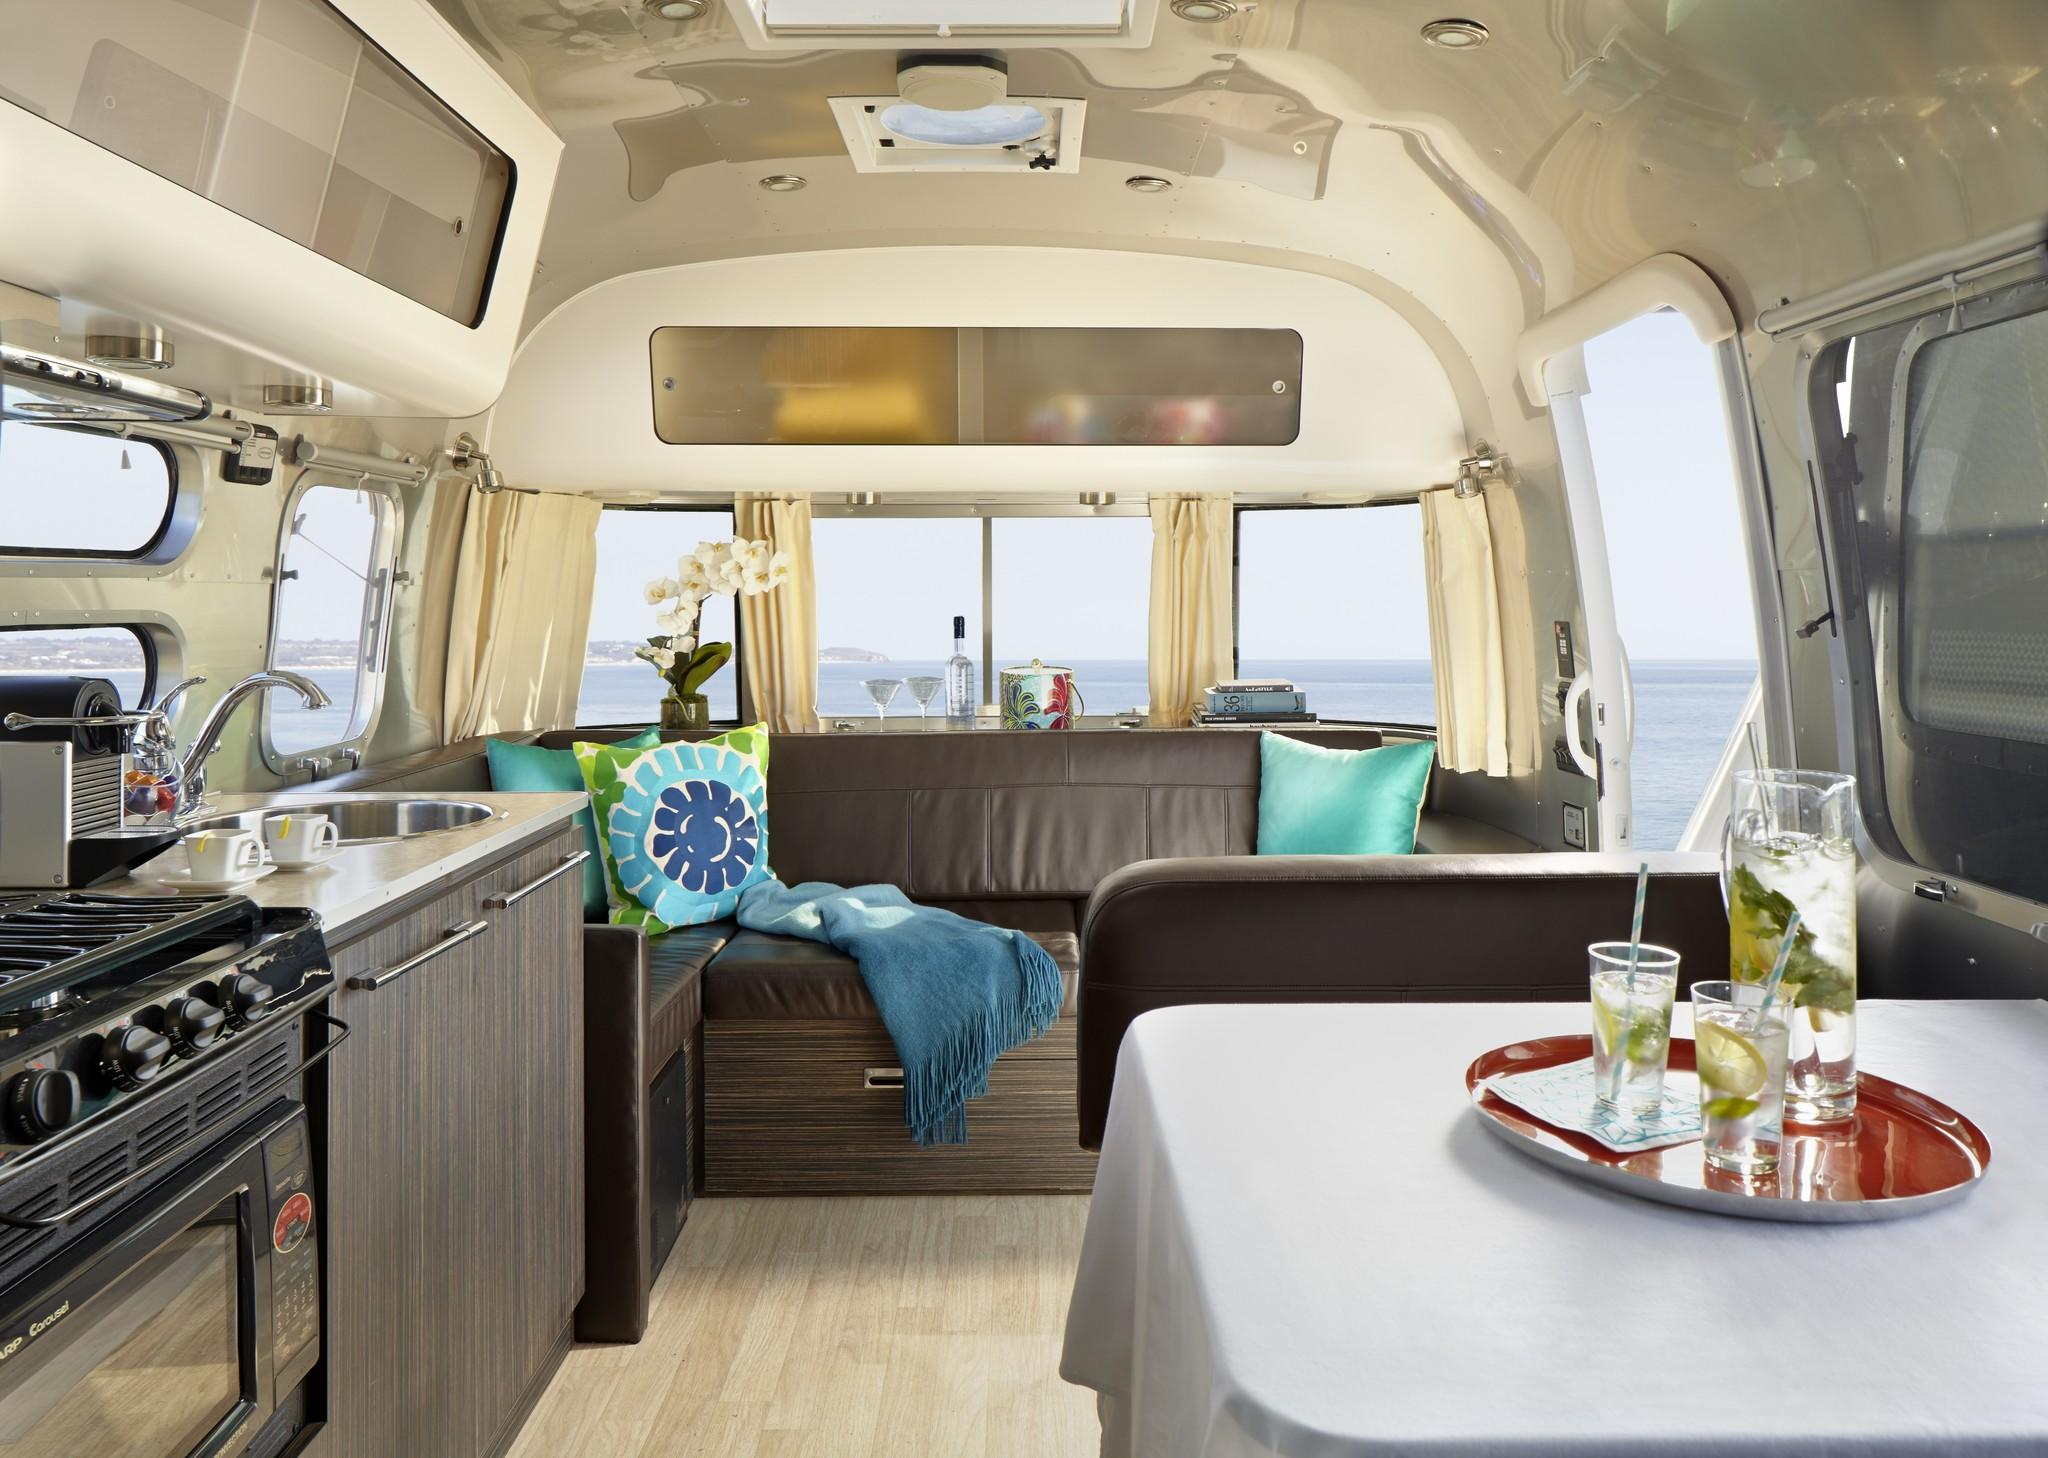 The Airstream mobile home that has been adapted as an AKA Beverly Hills suite.